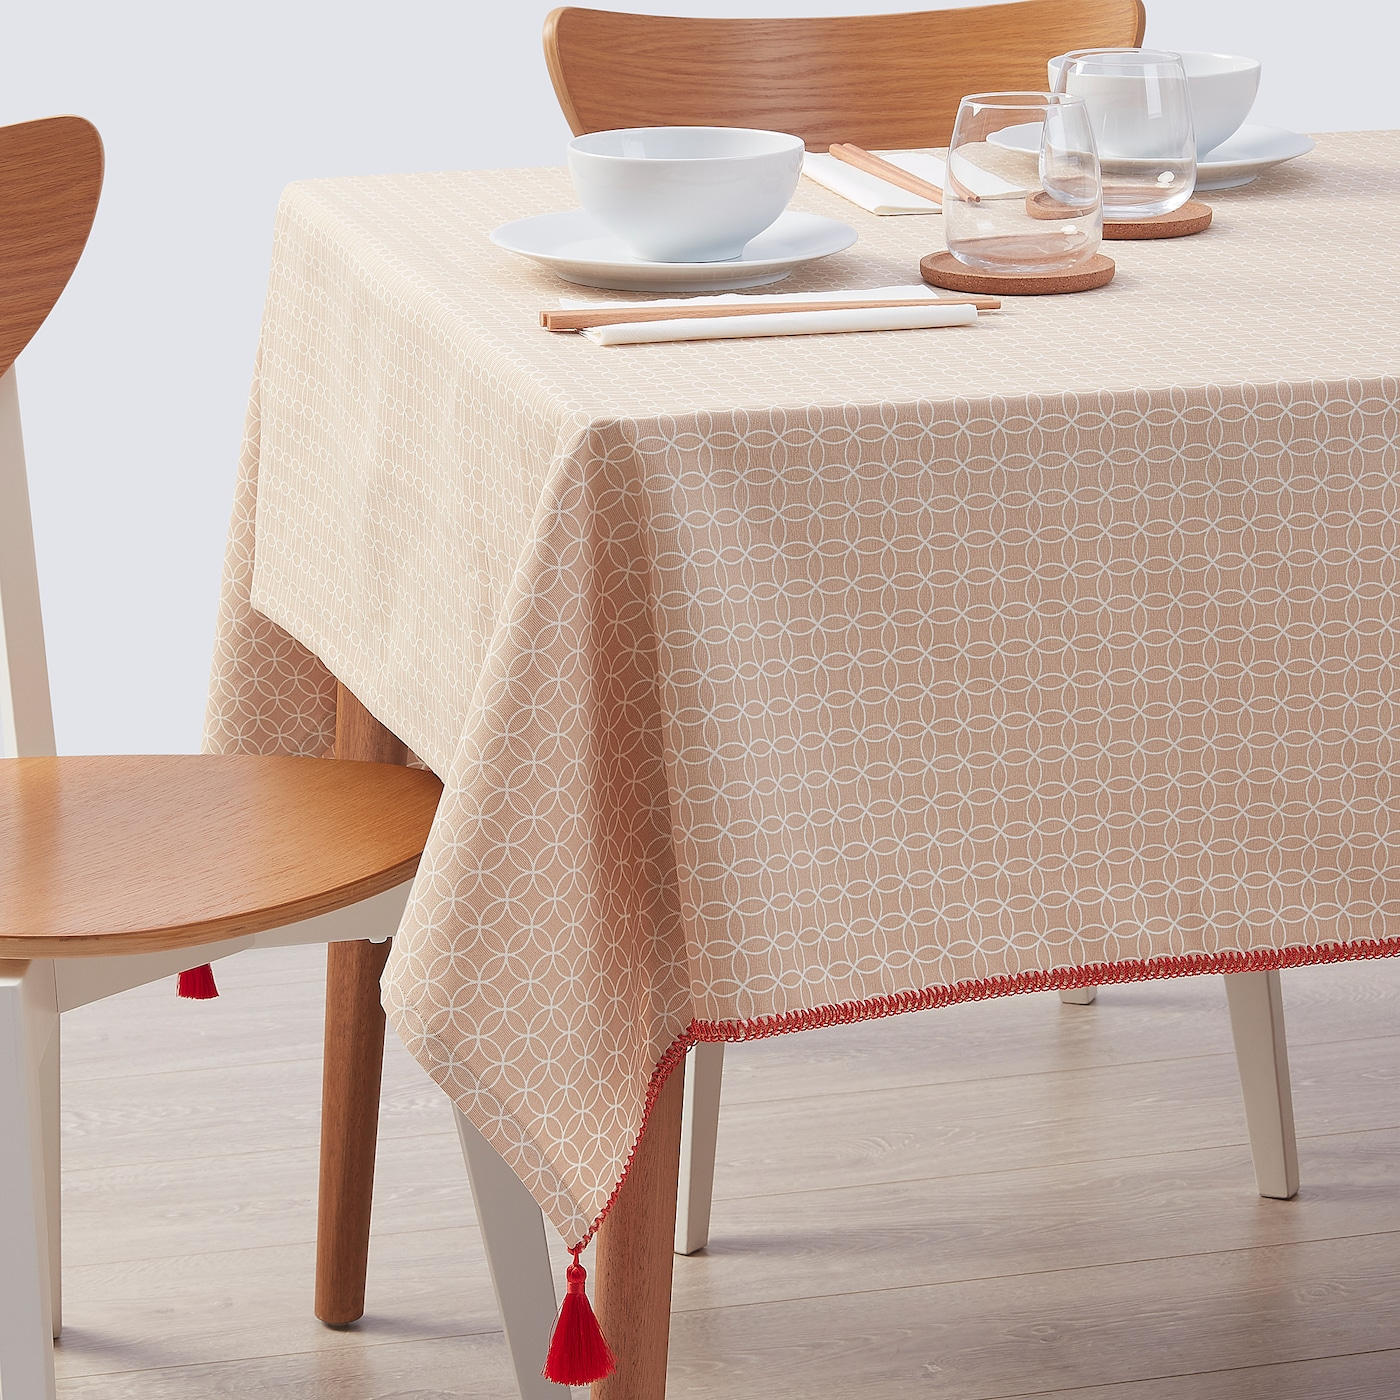 SOLGLIMTAR Tablecloth, brown/white, 145x220 cm